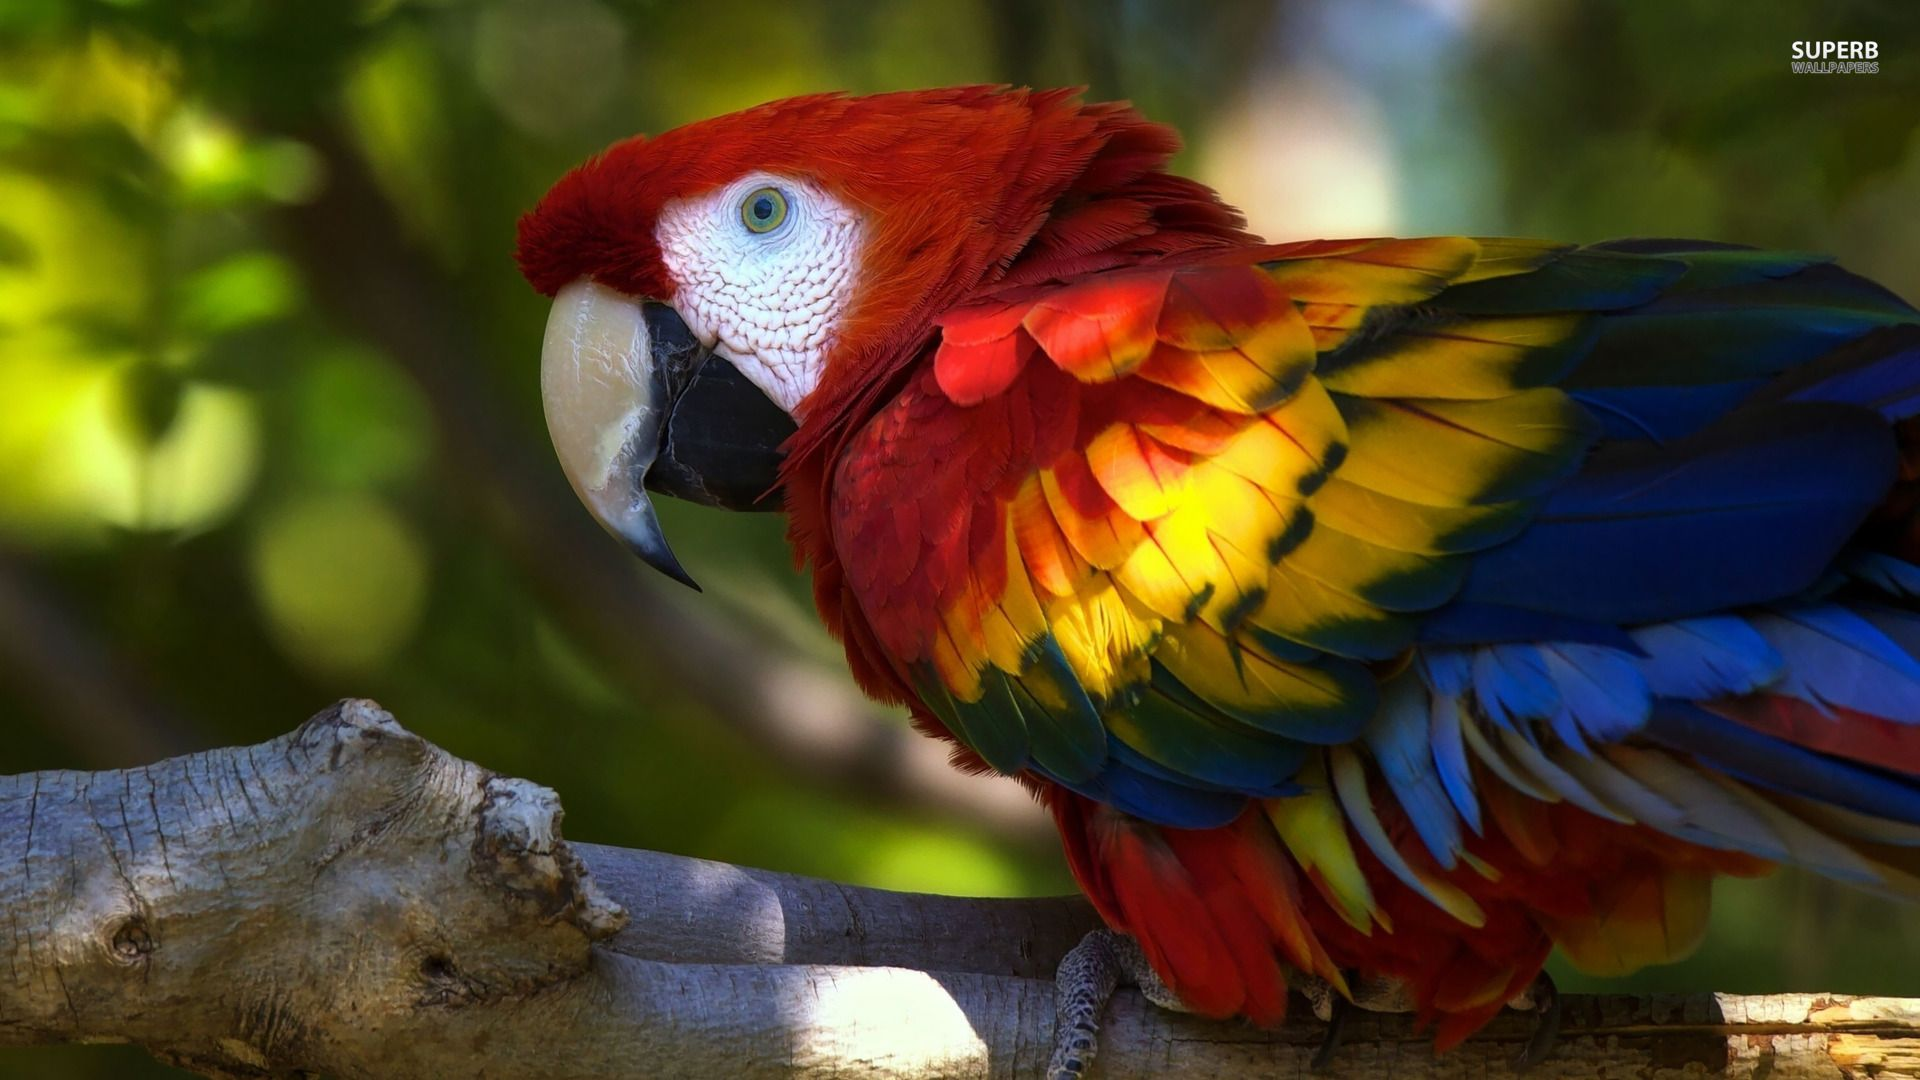 Scarlet Macaw Google Search Parrot Wallpaper Parrot Macaw Parrot